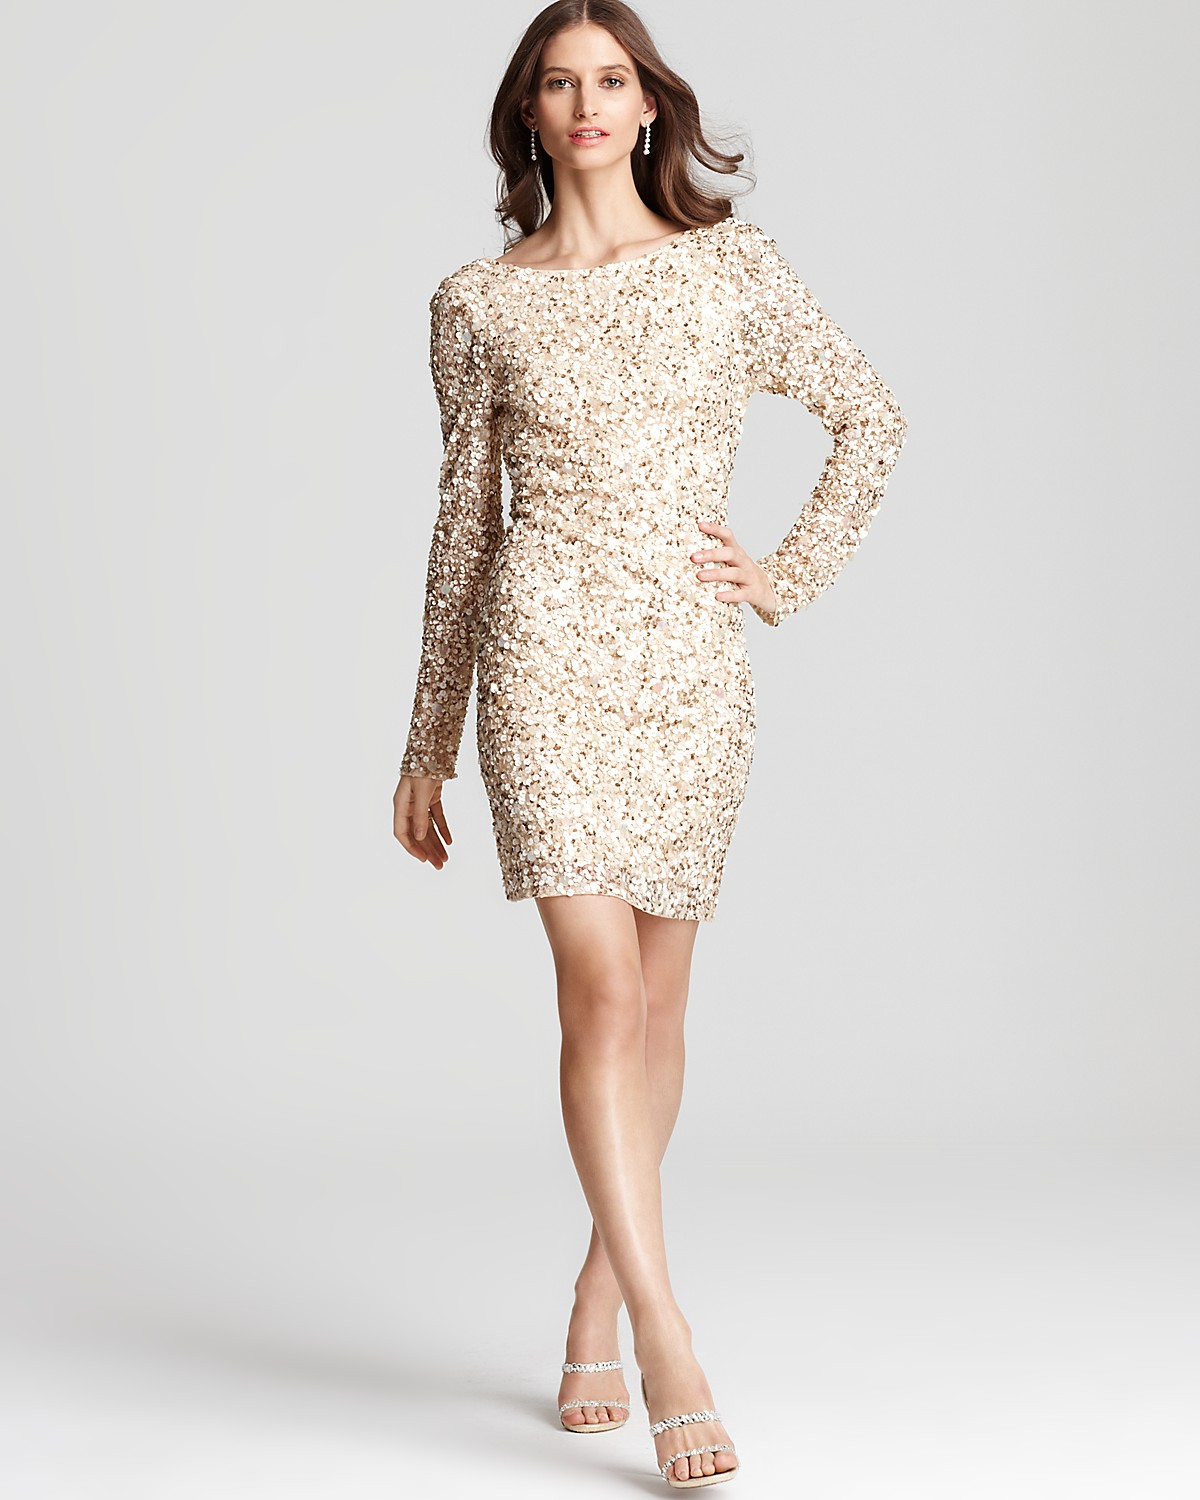 Long Sleeve Sequin Dress - Dressed Up Girl